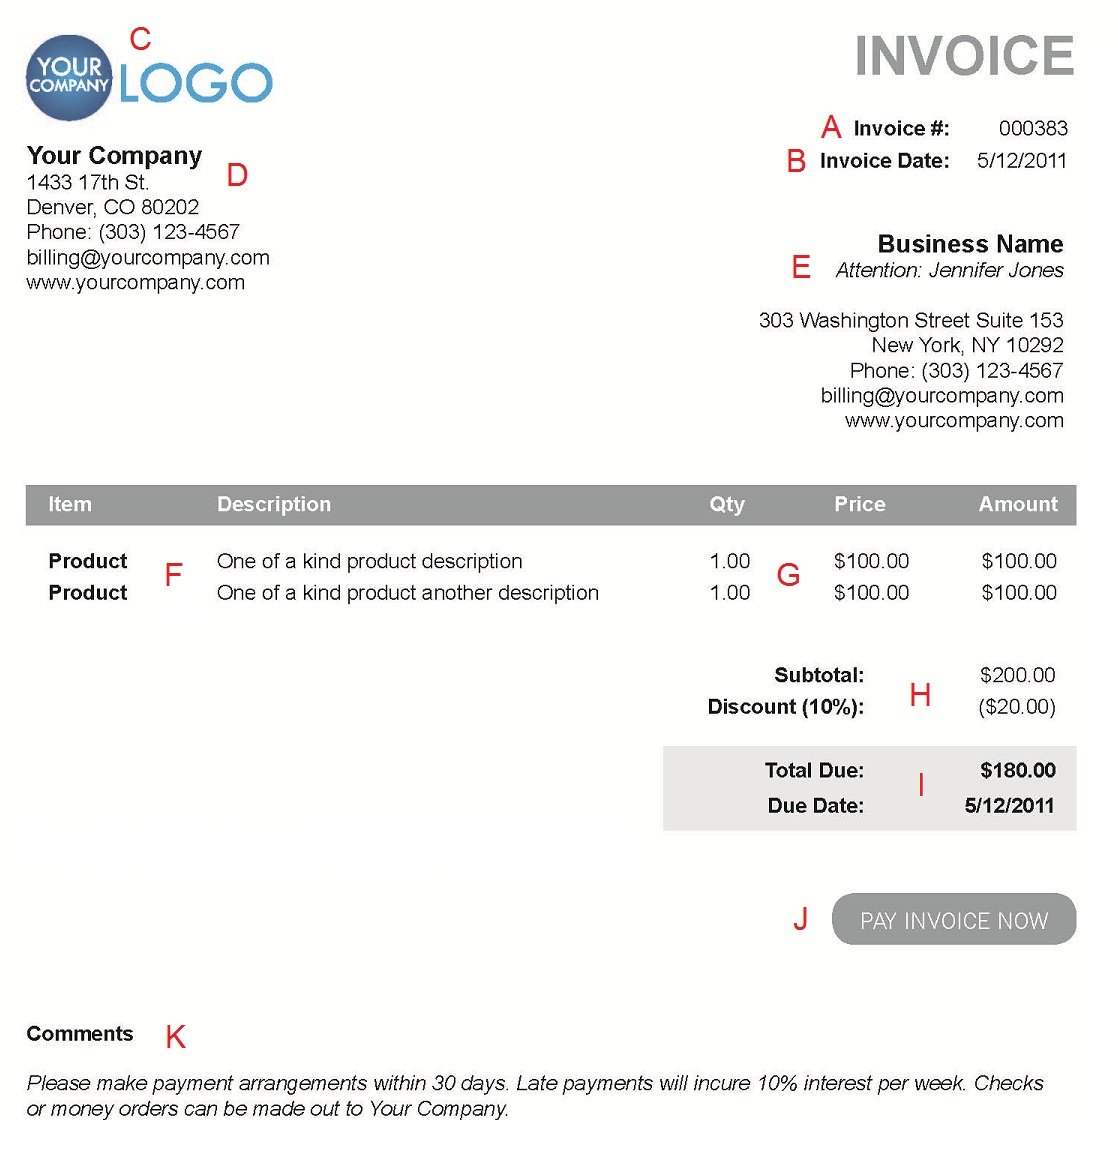 Imagerackus  Surprising The  Different Sections Of An Electronic Payment Invoice With Engaging A  With Beautiful Invoicing In Sap Also How To Find Out Invoice Price Of A New Car In Addition Invoice Mail And Invoice To Be Paid As Well As Proforma Invoice Download Additionally Invoice Receivables From Paysimplecom With Imagerackus  Engaging The  Different Sections Of An Electronic Payment Invoice With Beautiful A  And Surprising Invoicing In Sap Also How To Find Out Invoice Price Of A New Car In Addition Invoice Mail From Paysimplecom